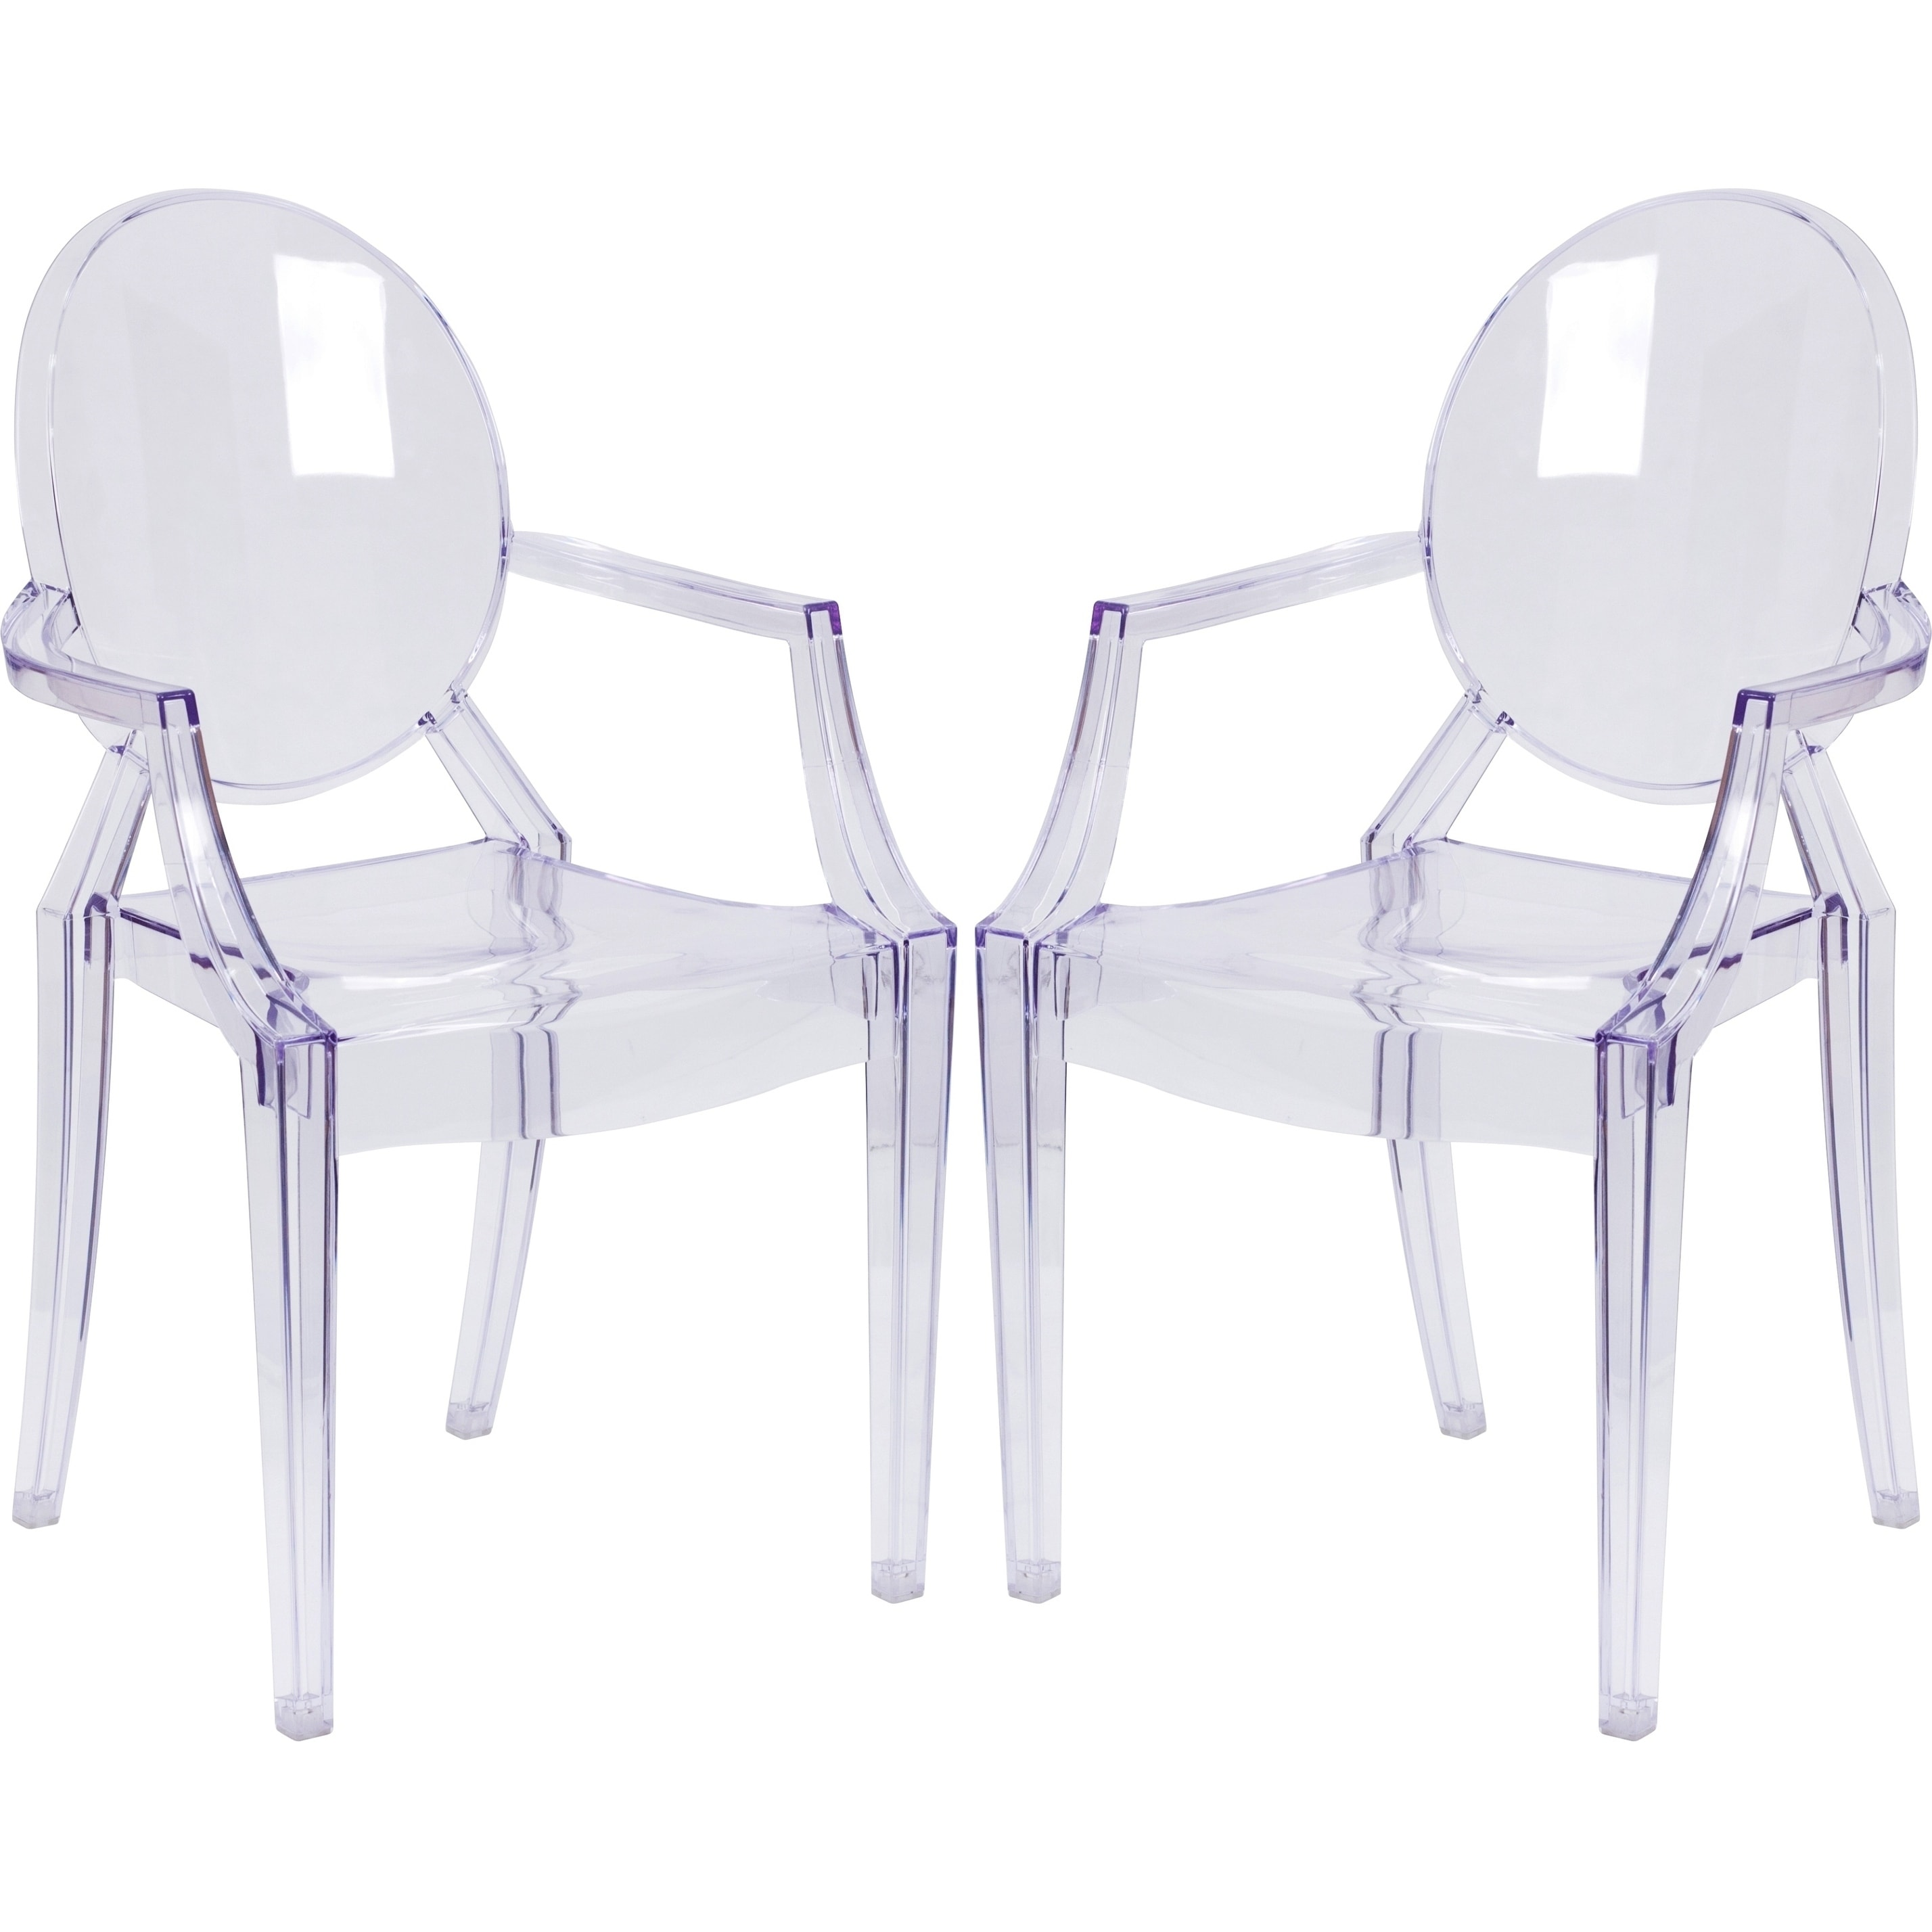 A Line Furniture Ghost Design Transparent Crystal Round Back Arm Chair